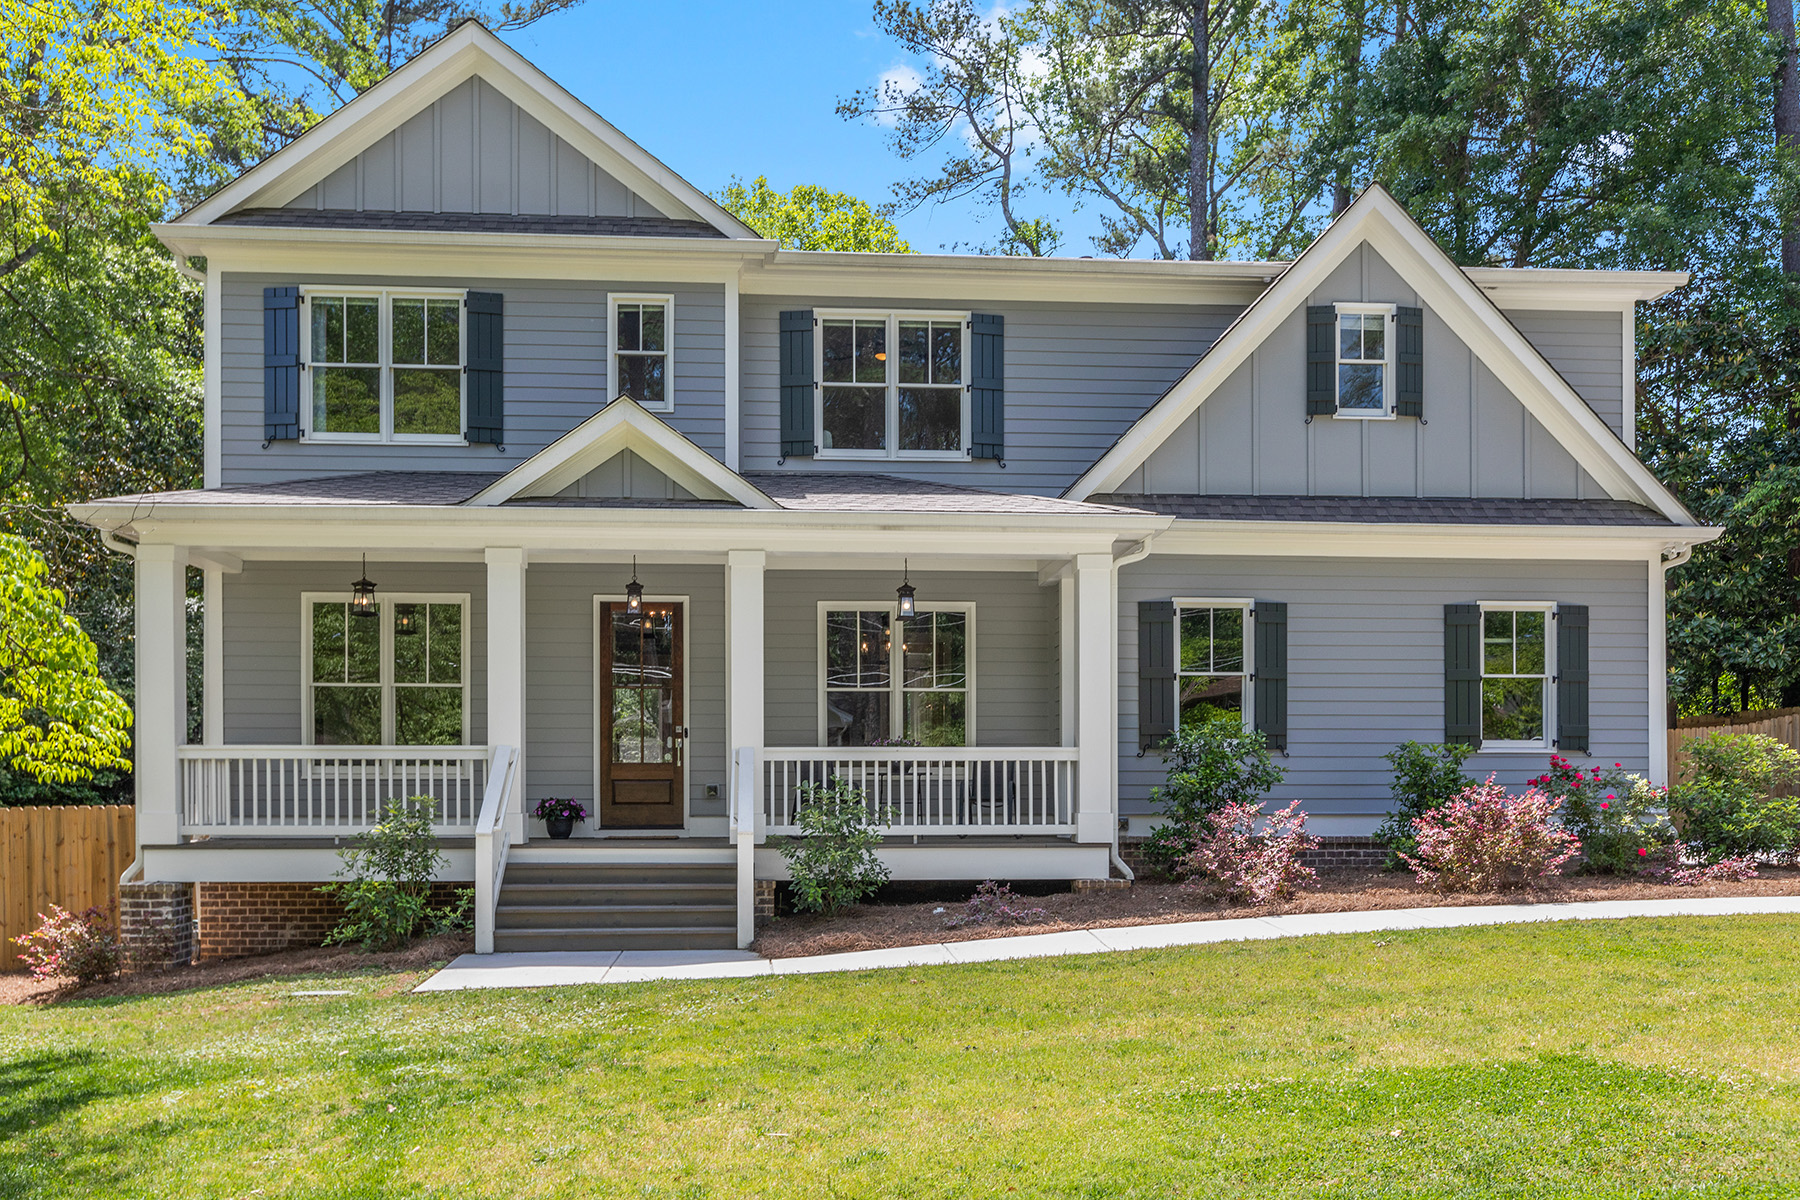 Single Family Homes for Sale at Custom Built Craftsman with Swimming Pool 3025 E Ramble Lane Decatur, Georgia 30033 United States